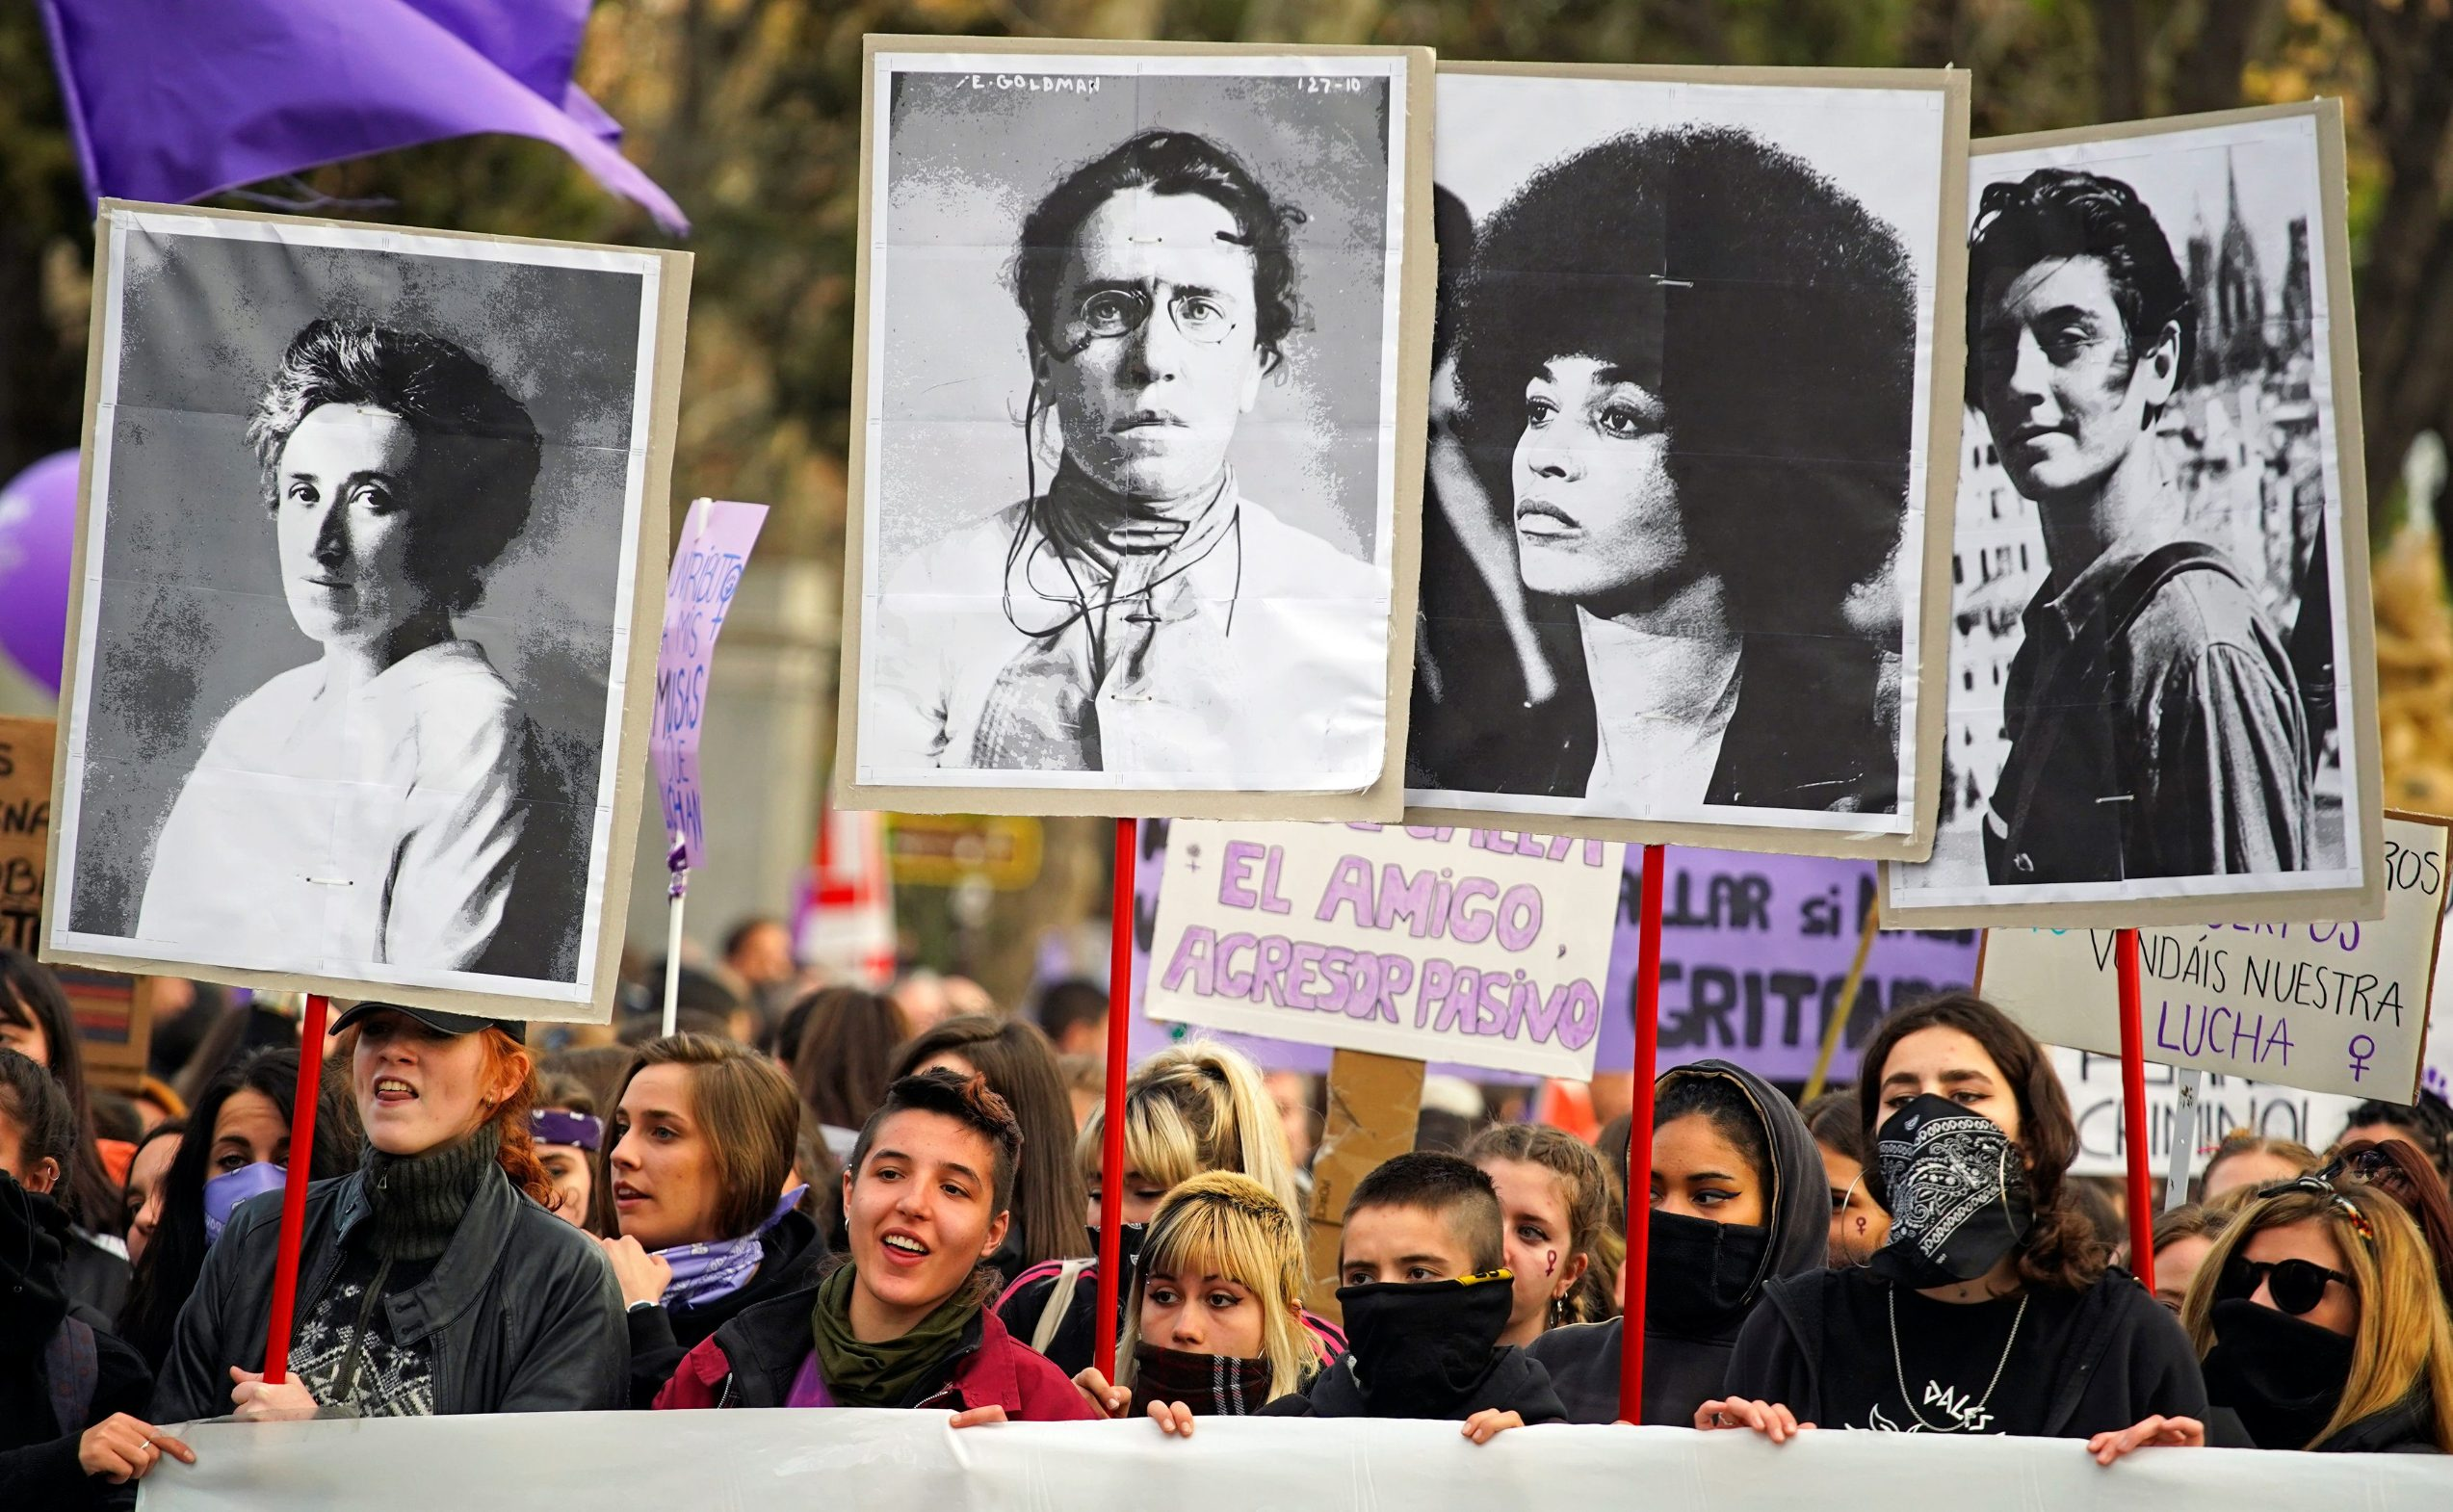 Protesters take part in a demonstration during a nationwide feminist strike on International Women's Day in Madrid, Spain, March 8, 2019.  REUTERS/Juan Medina